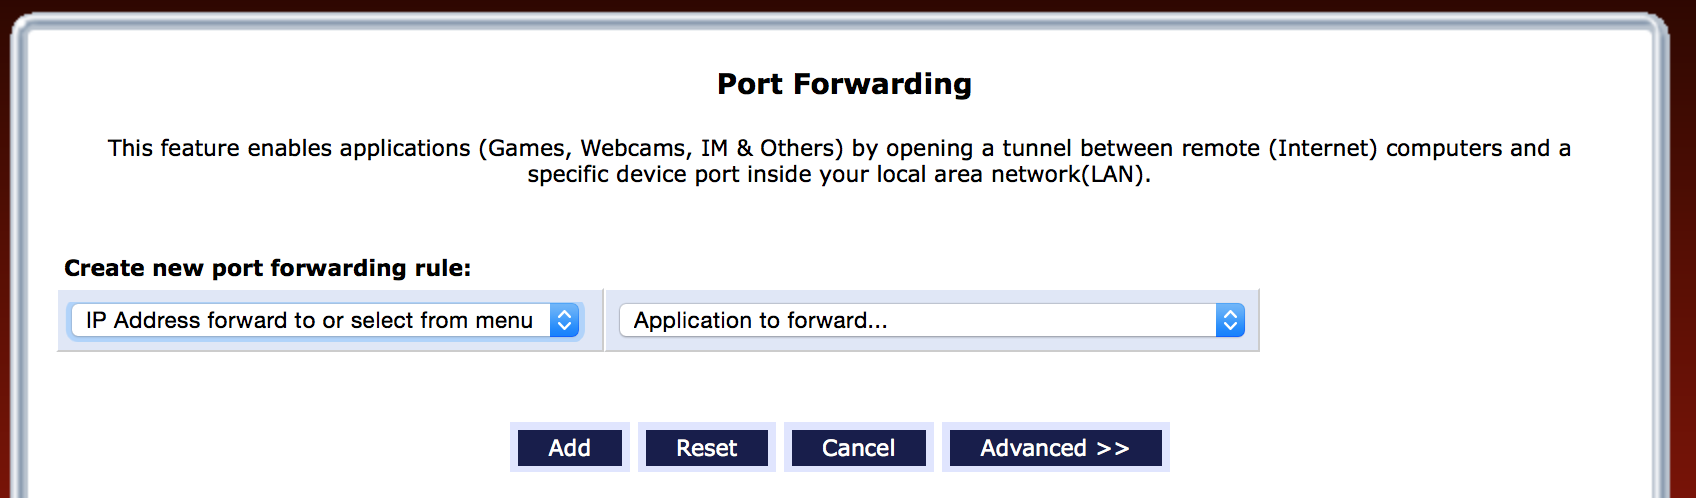 port_forwarding.png